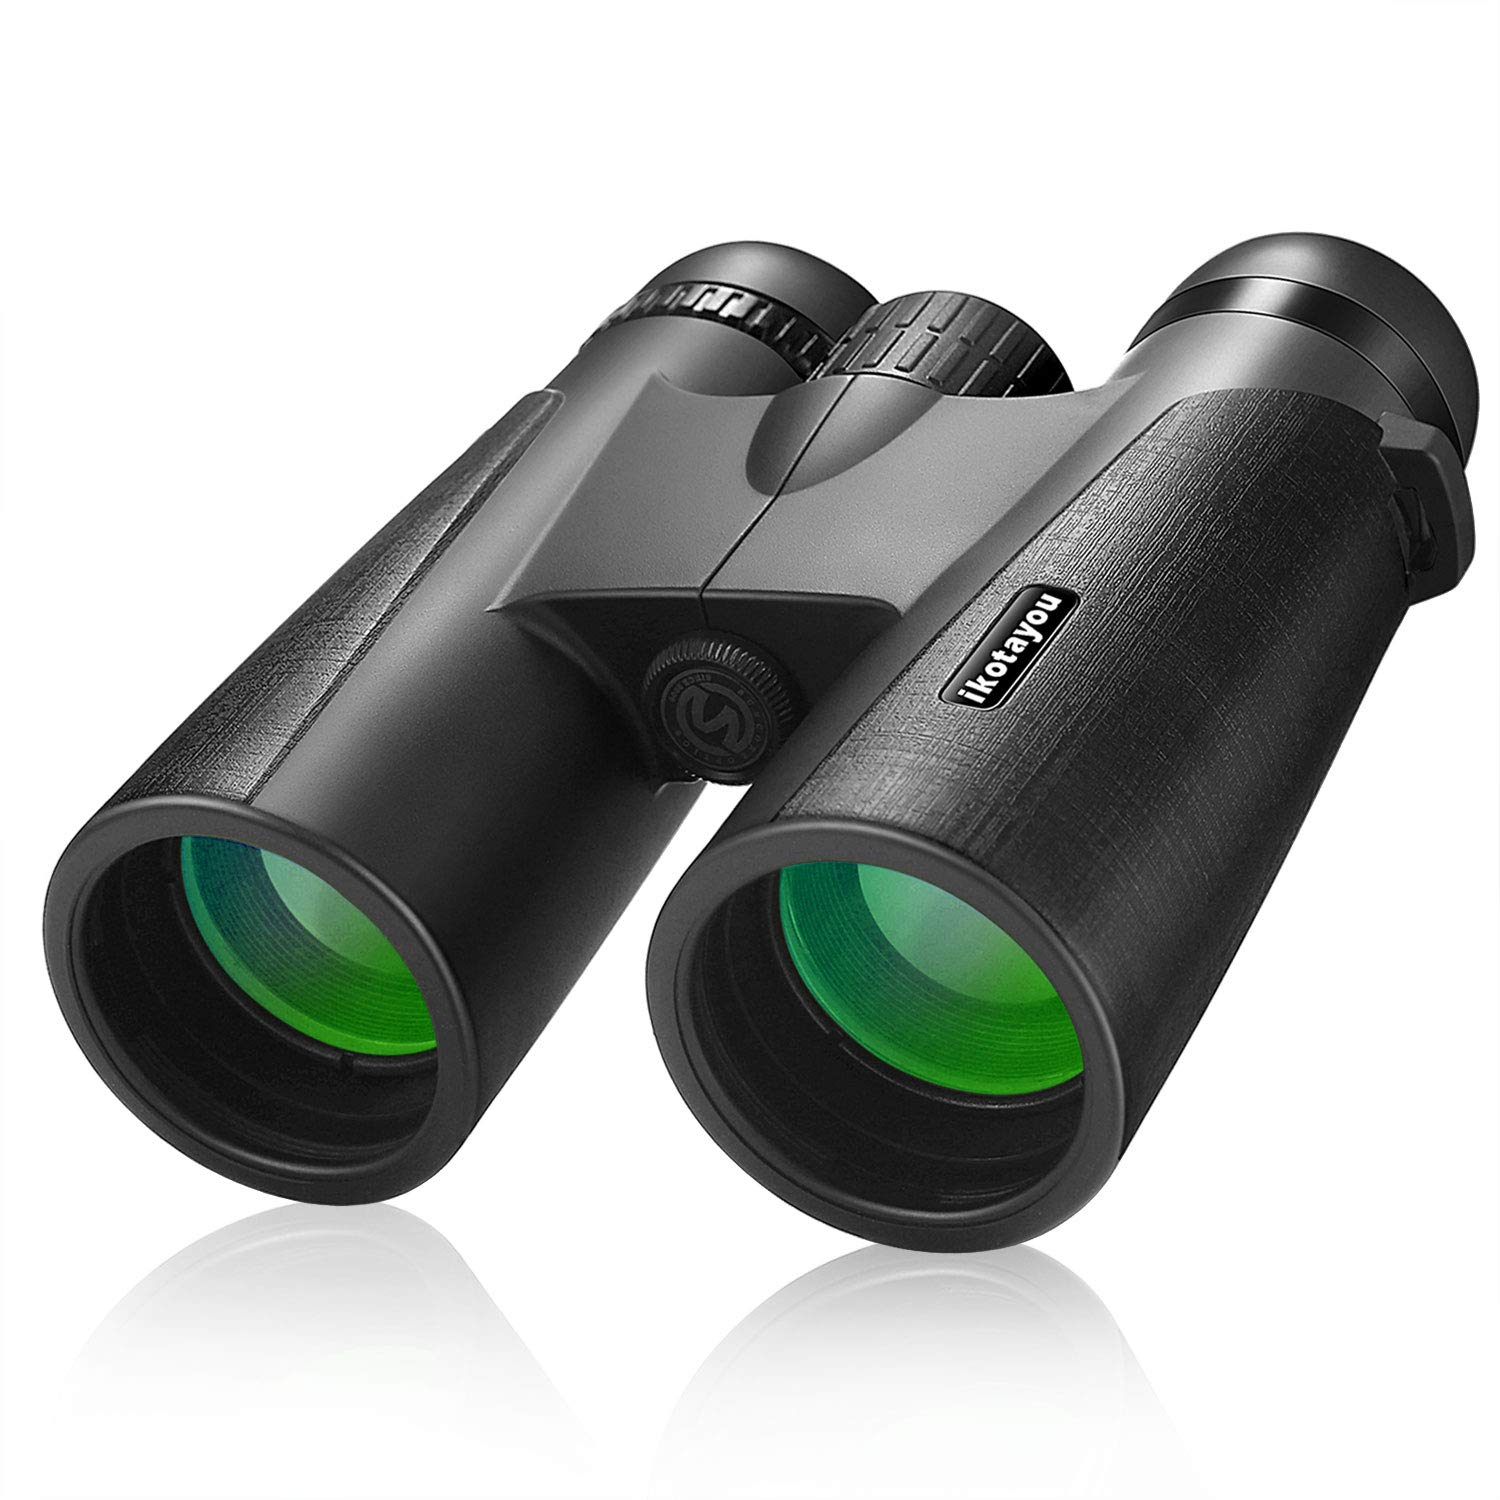 Binoculars for Adults,12x42 Powerful HD Men Gift Binoculars with Low Light Night Vision for Birding Watching Hunting Hiking Camping Concerts Travel Sports,BAK4 Prism FMC Lens with Strap Carrying Bag